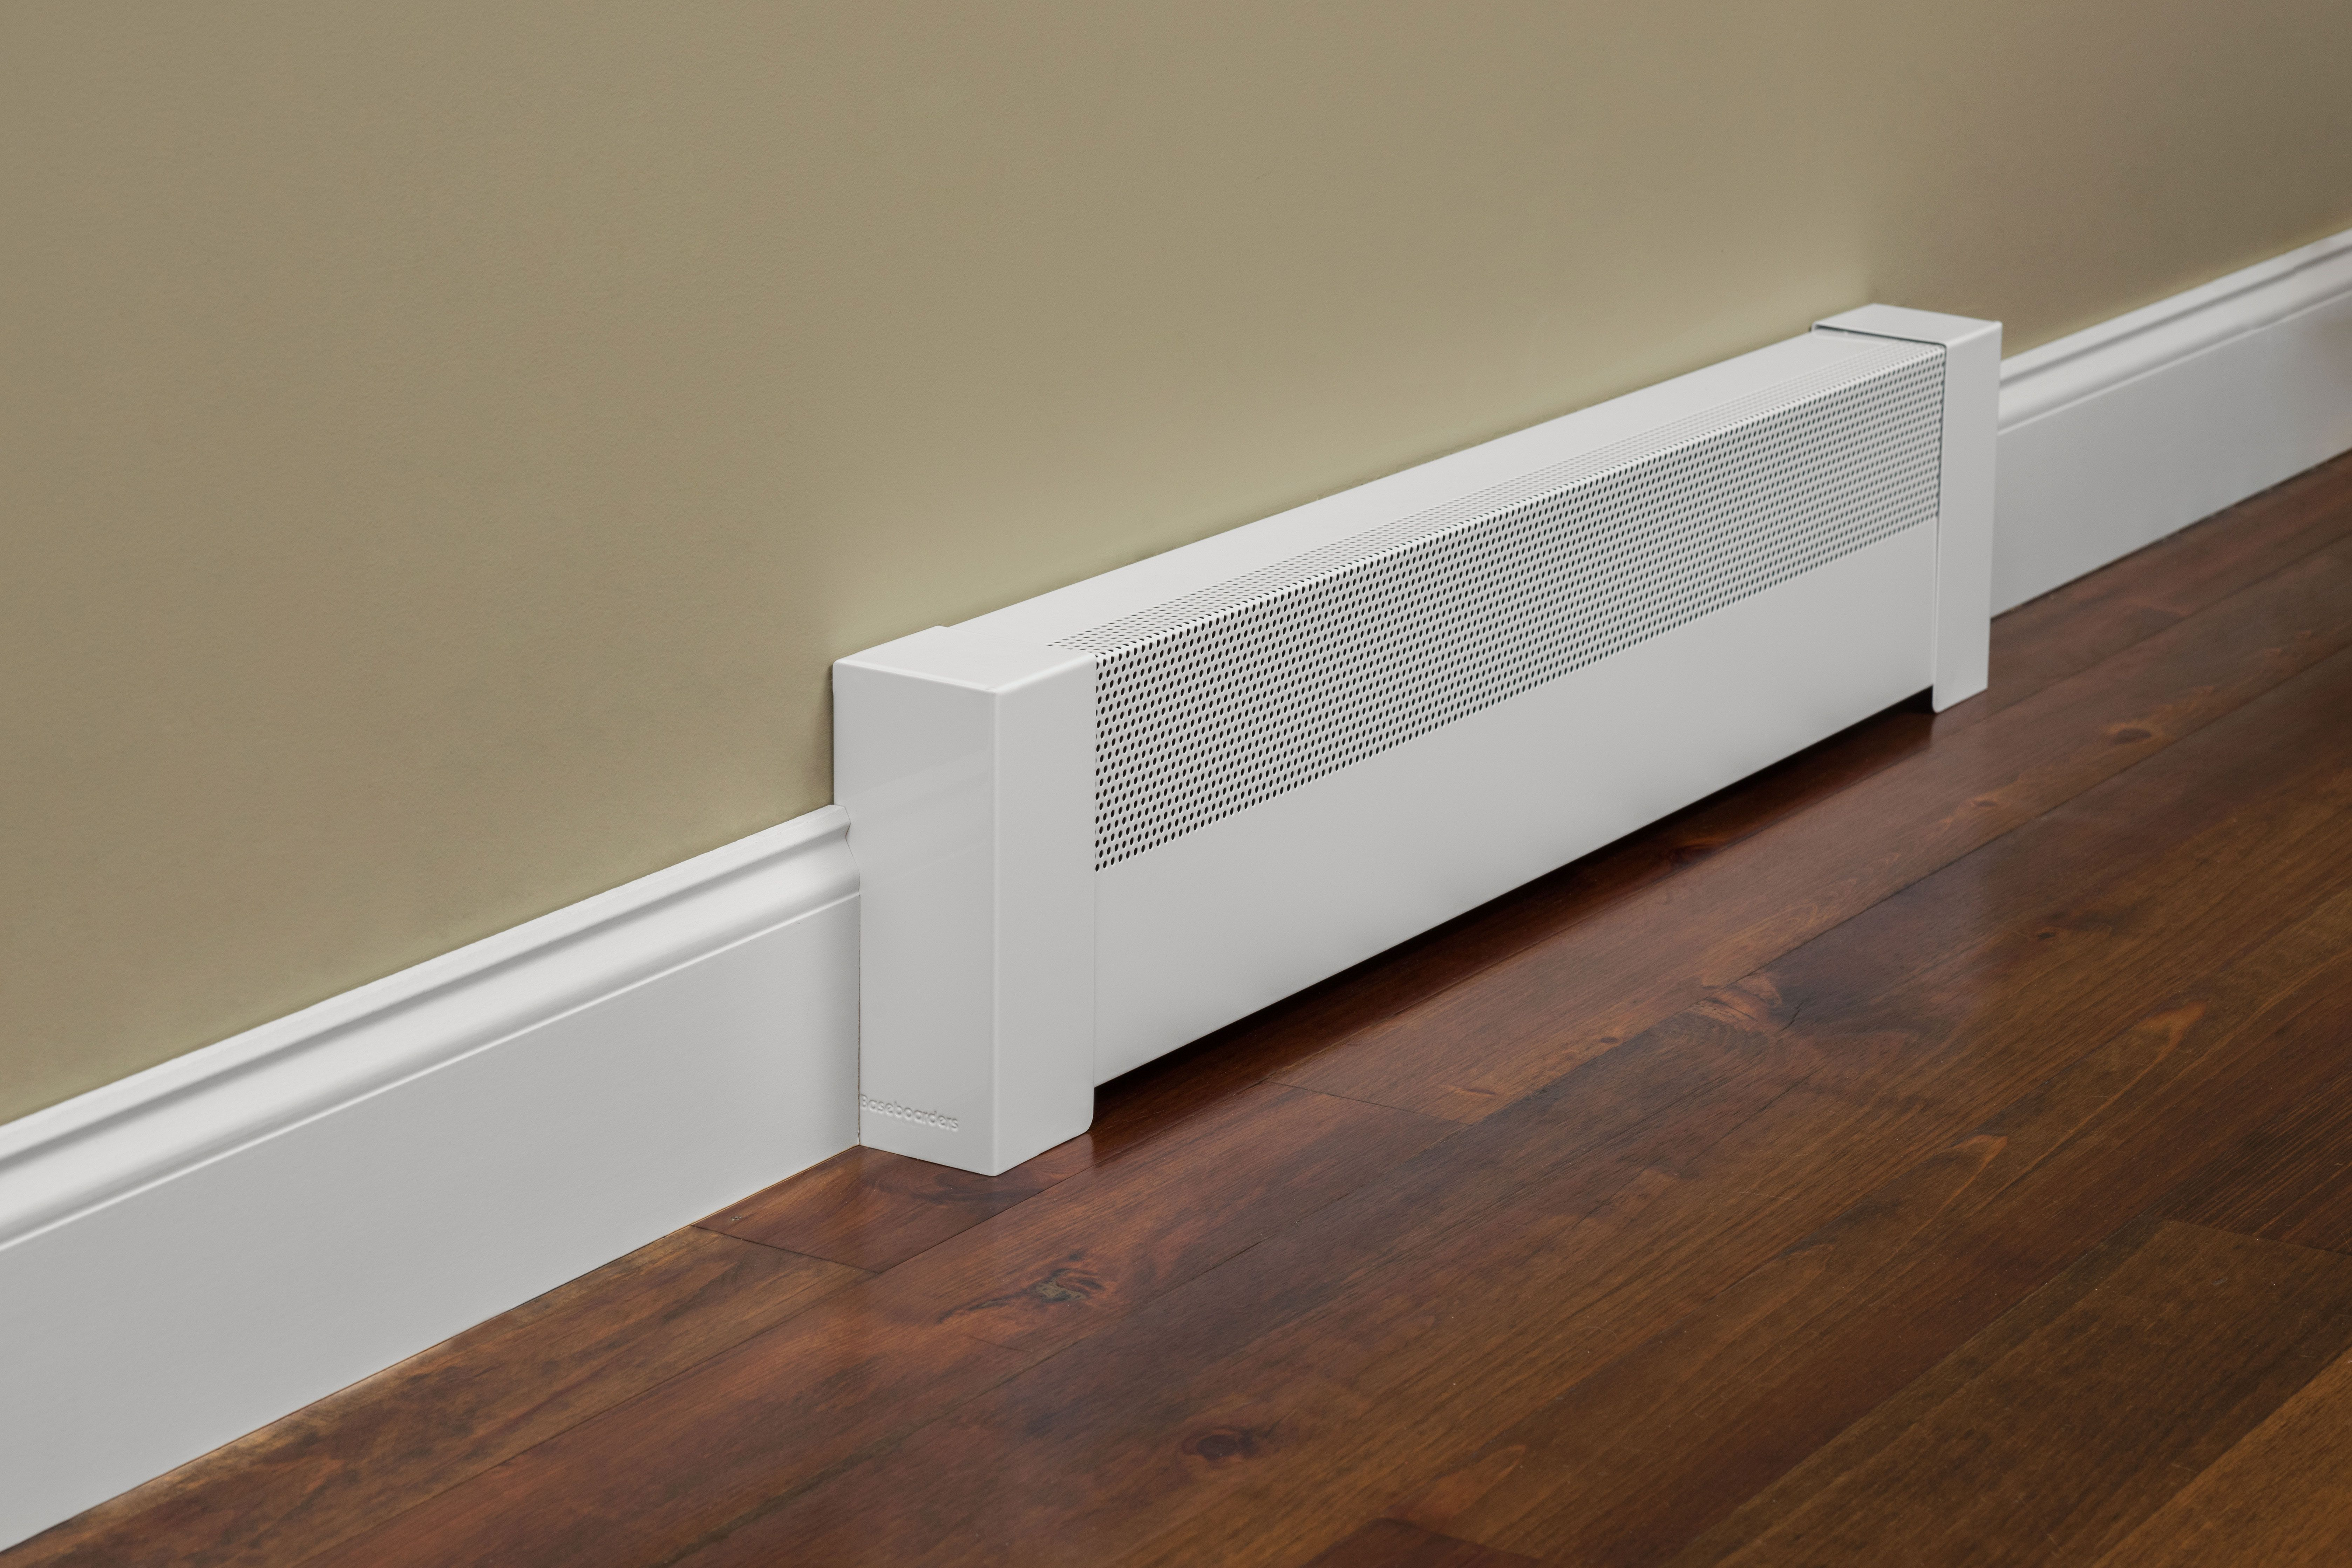 Sleek Square Baseboard Covers For A More Modern Look Baseboard Heater Covers Heater Cover Baseboard Heater